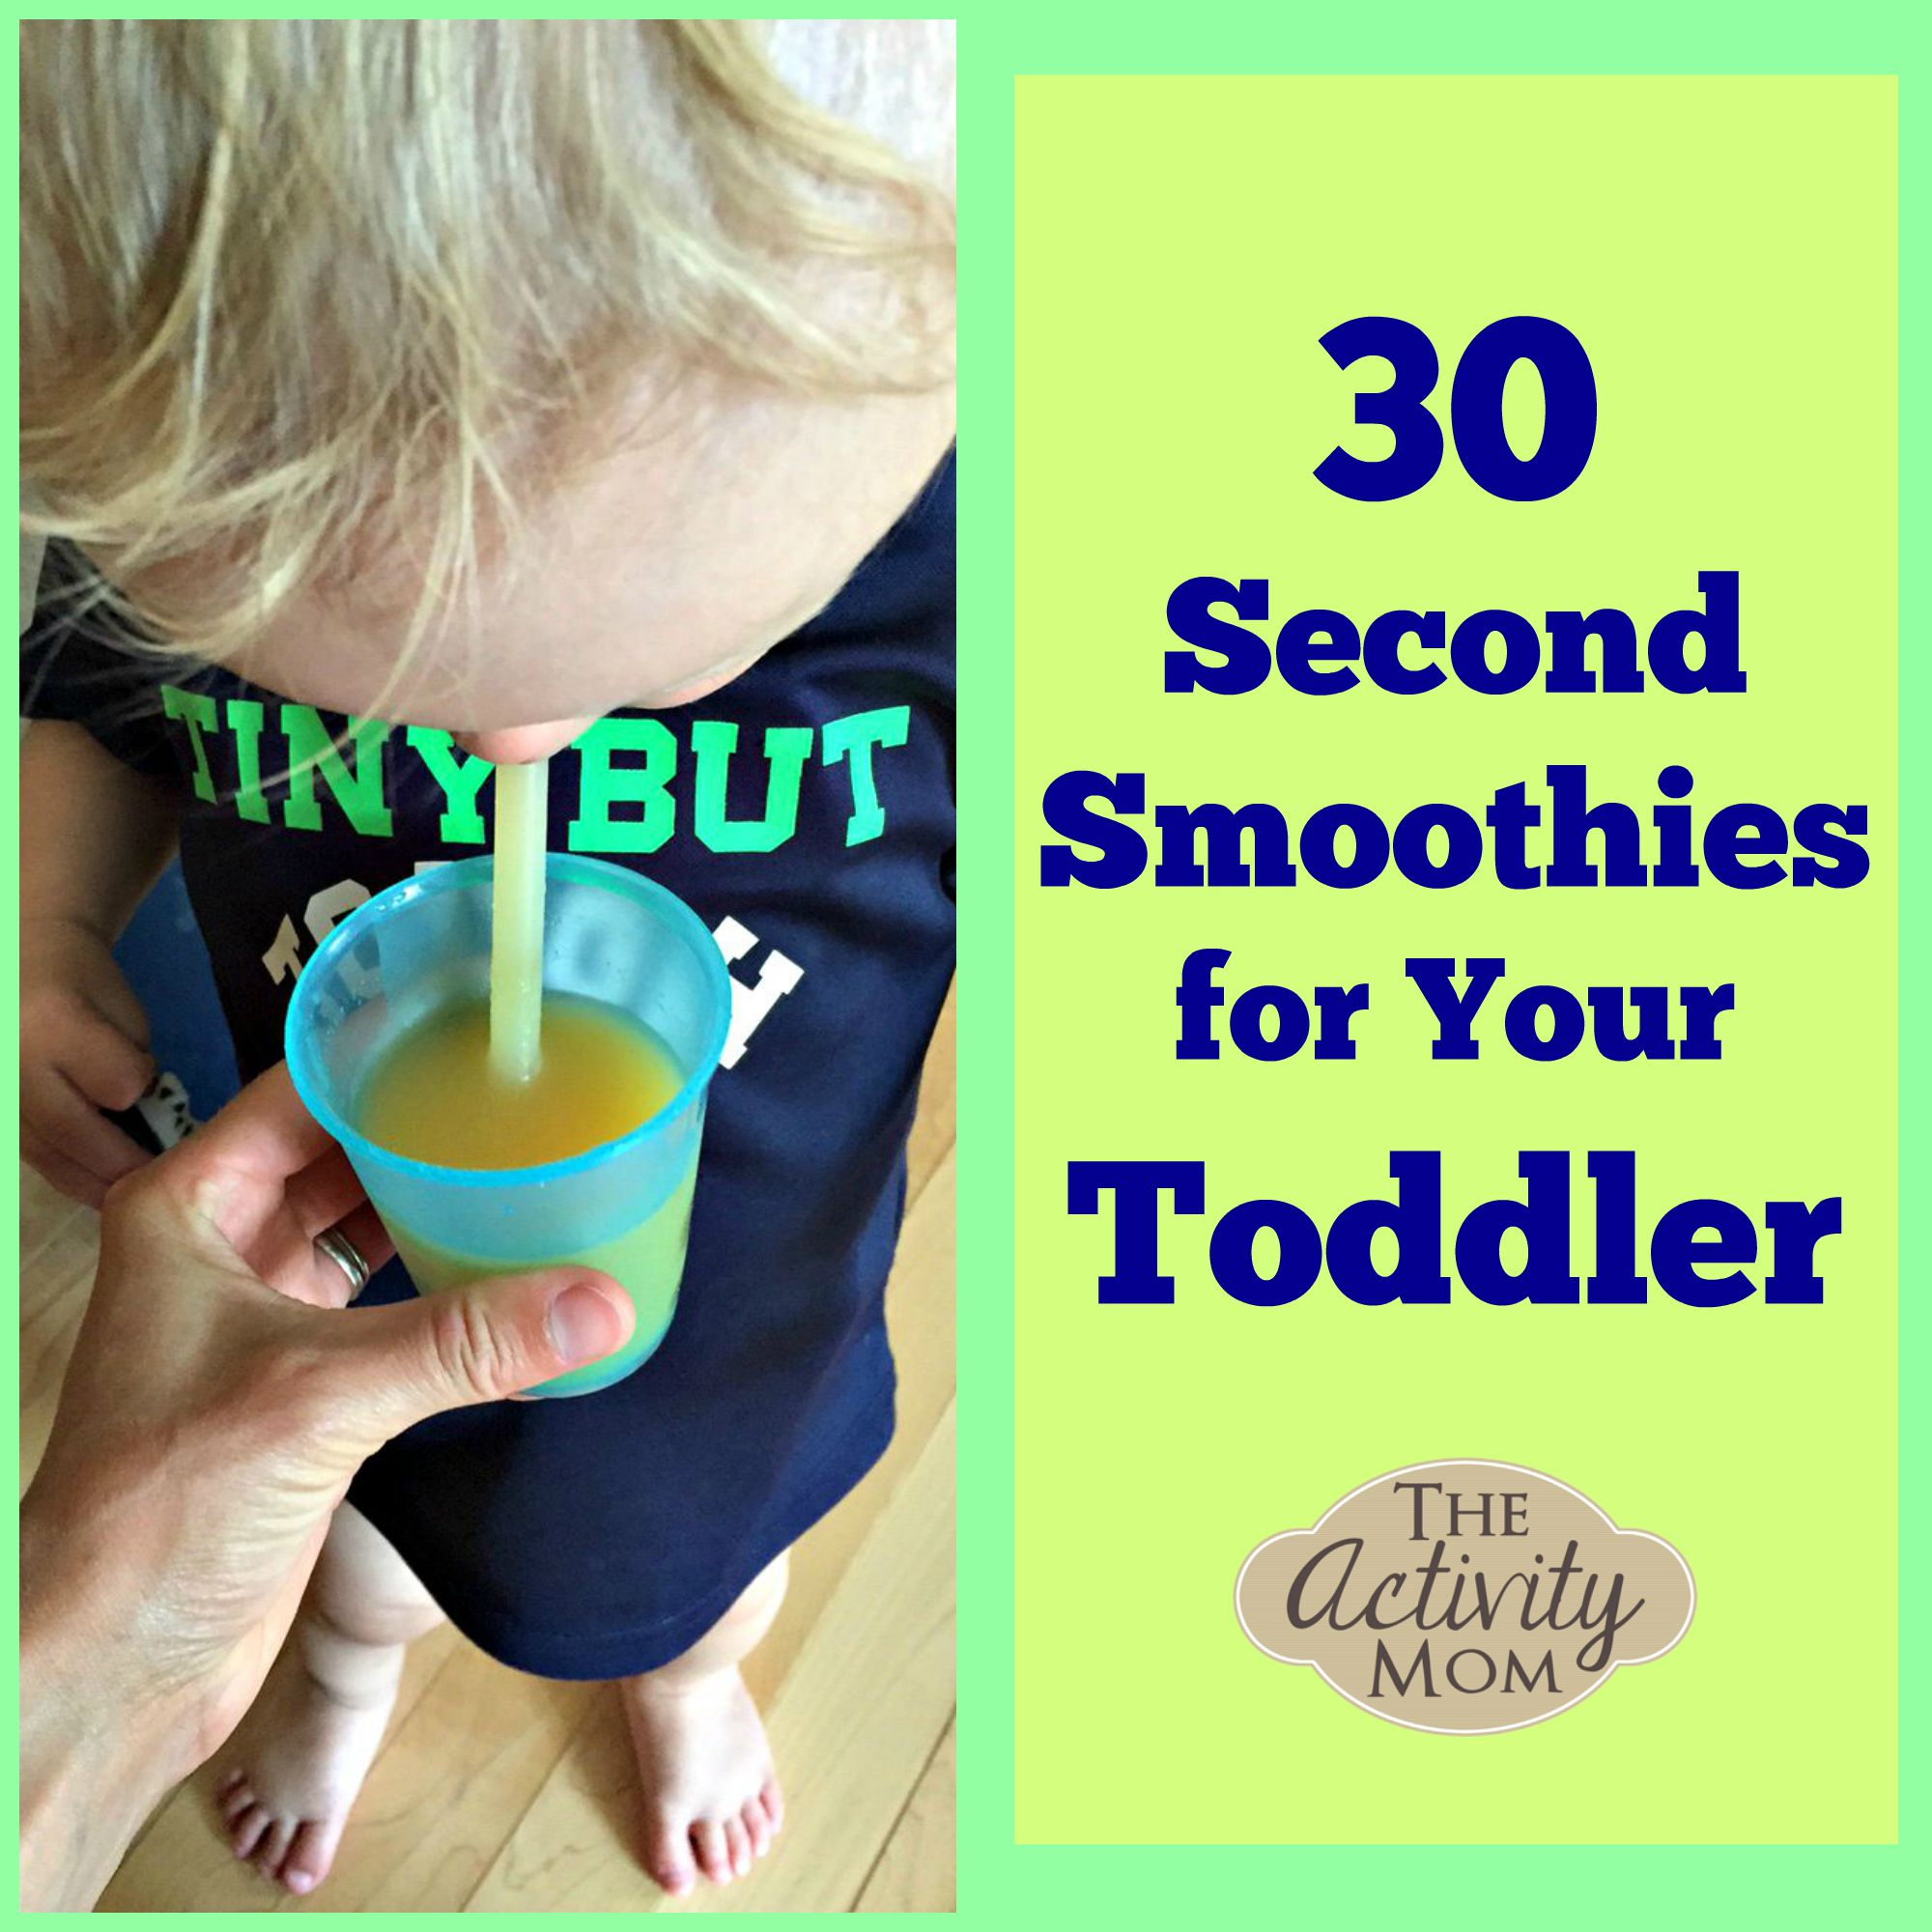 30 Second Smoothies for Your Toddler